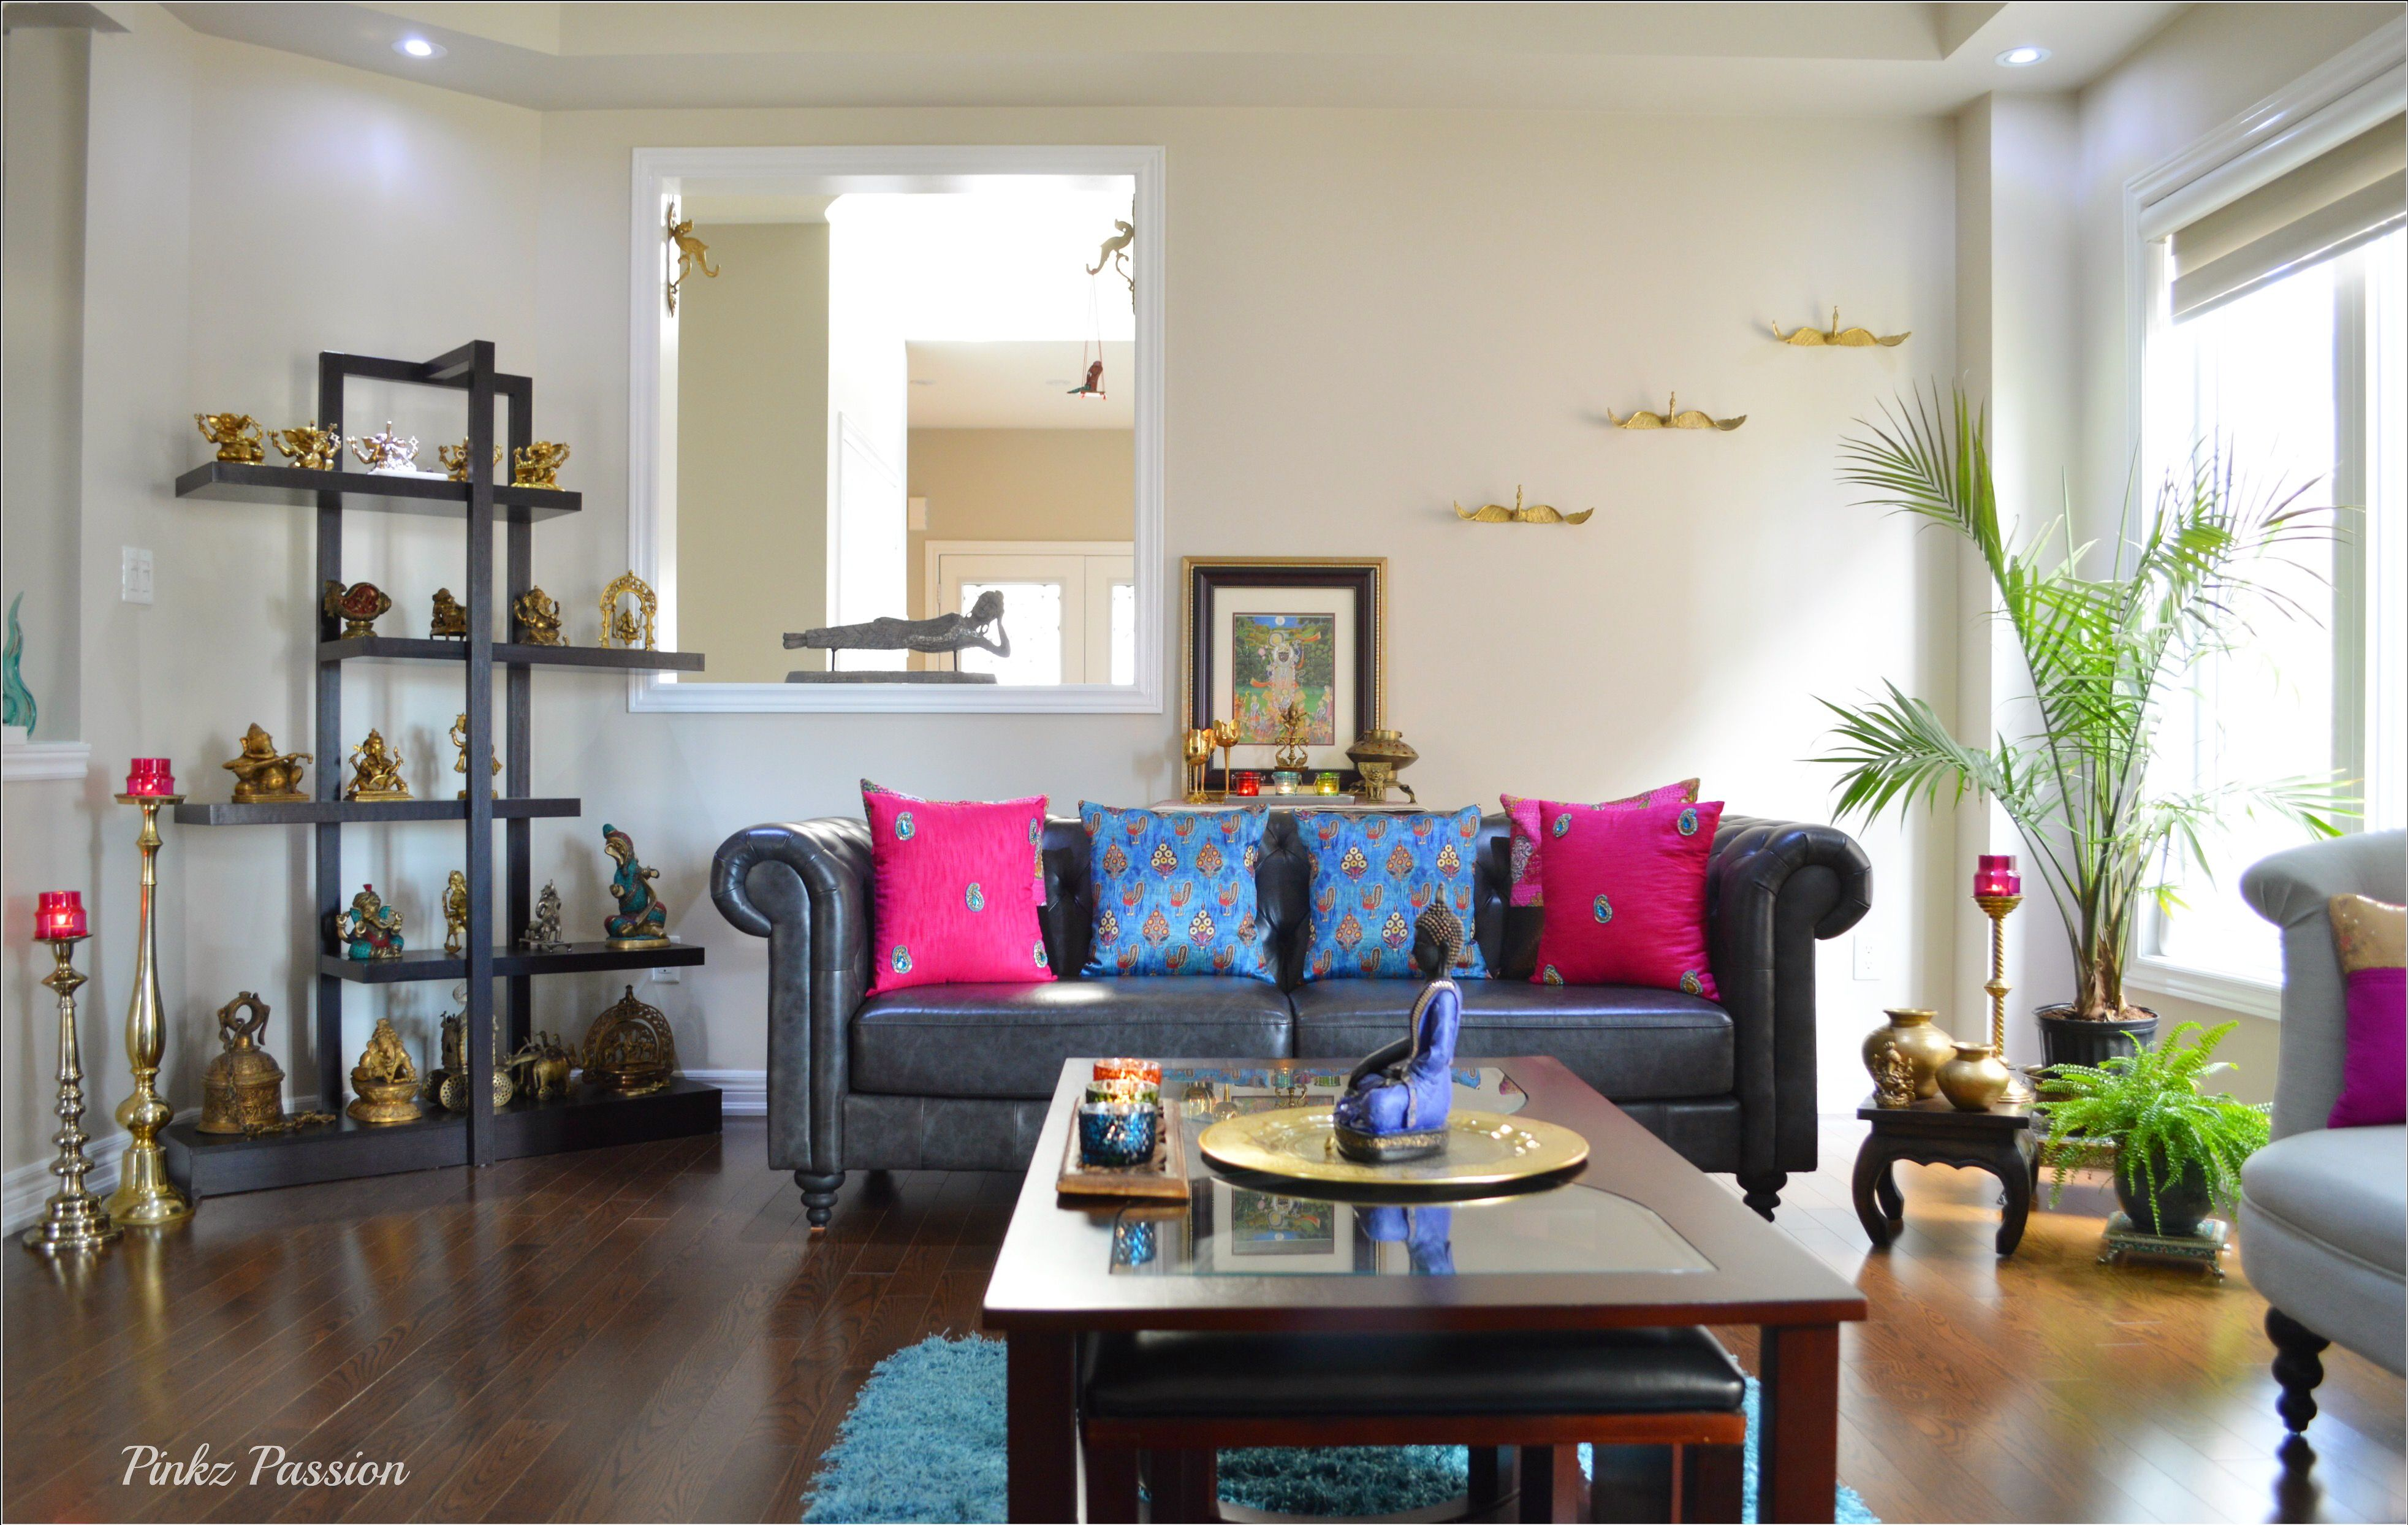 Home Decor Indian Inspired Indian Home Decor Family Room Ideas Family Room Desi Home Living Room Indian Decor Decor Indian Decor Rustic Living Room